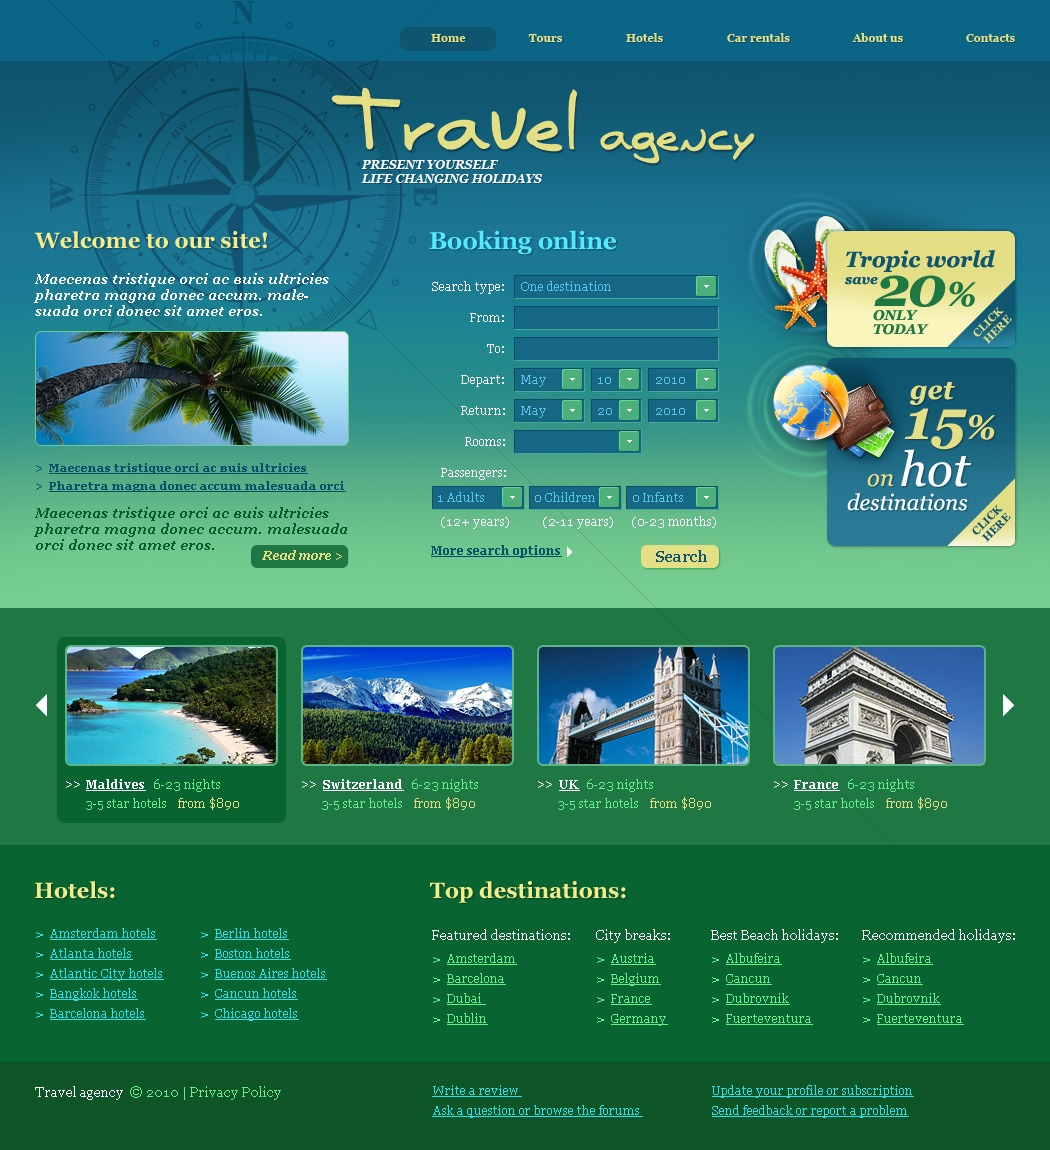 The Travel Agency PSD Design 54069, one of the best PSD templates of its kind (travel, wide, jquery), also known as travel agency PSD template, compass PSD template, tour country PSD template, resort PSD template, spa PSD template, flight hotel PSD template, car PSD template, rental PSD template, cruise PSD template, sights PSD template, reservation PSD template, location PSD template, authorization PSD template, ticket PSD template, guide PSD template, beach PSD template, sea PSD template, relaxation PSD template, recreation PSD template, impression PSD template, air PSD template, liner PSD template, traveling PSD template, apartment PSD template, vacation PSD template, rest PSD template, comfort PSD template, destination PSD template, expl and related with travel agency, compass, tour country, resort, spa, flight hotel, car, rental, cruise, sights, reservation, location, authorization, ticket, guide, beach, sea, relaxation, recreation, impression, air, liner, traveling, apartment, vacation, rest, comfort, destination, expl, etc.